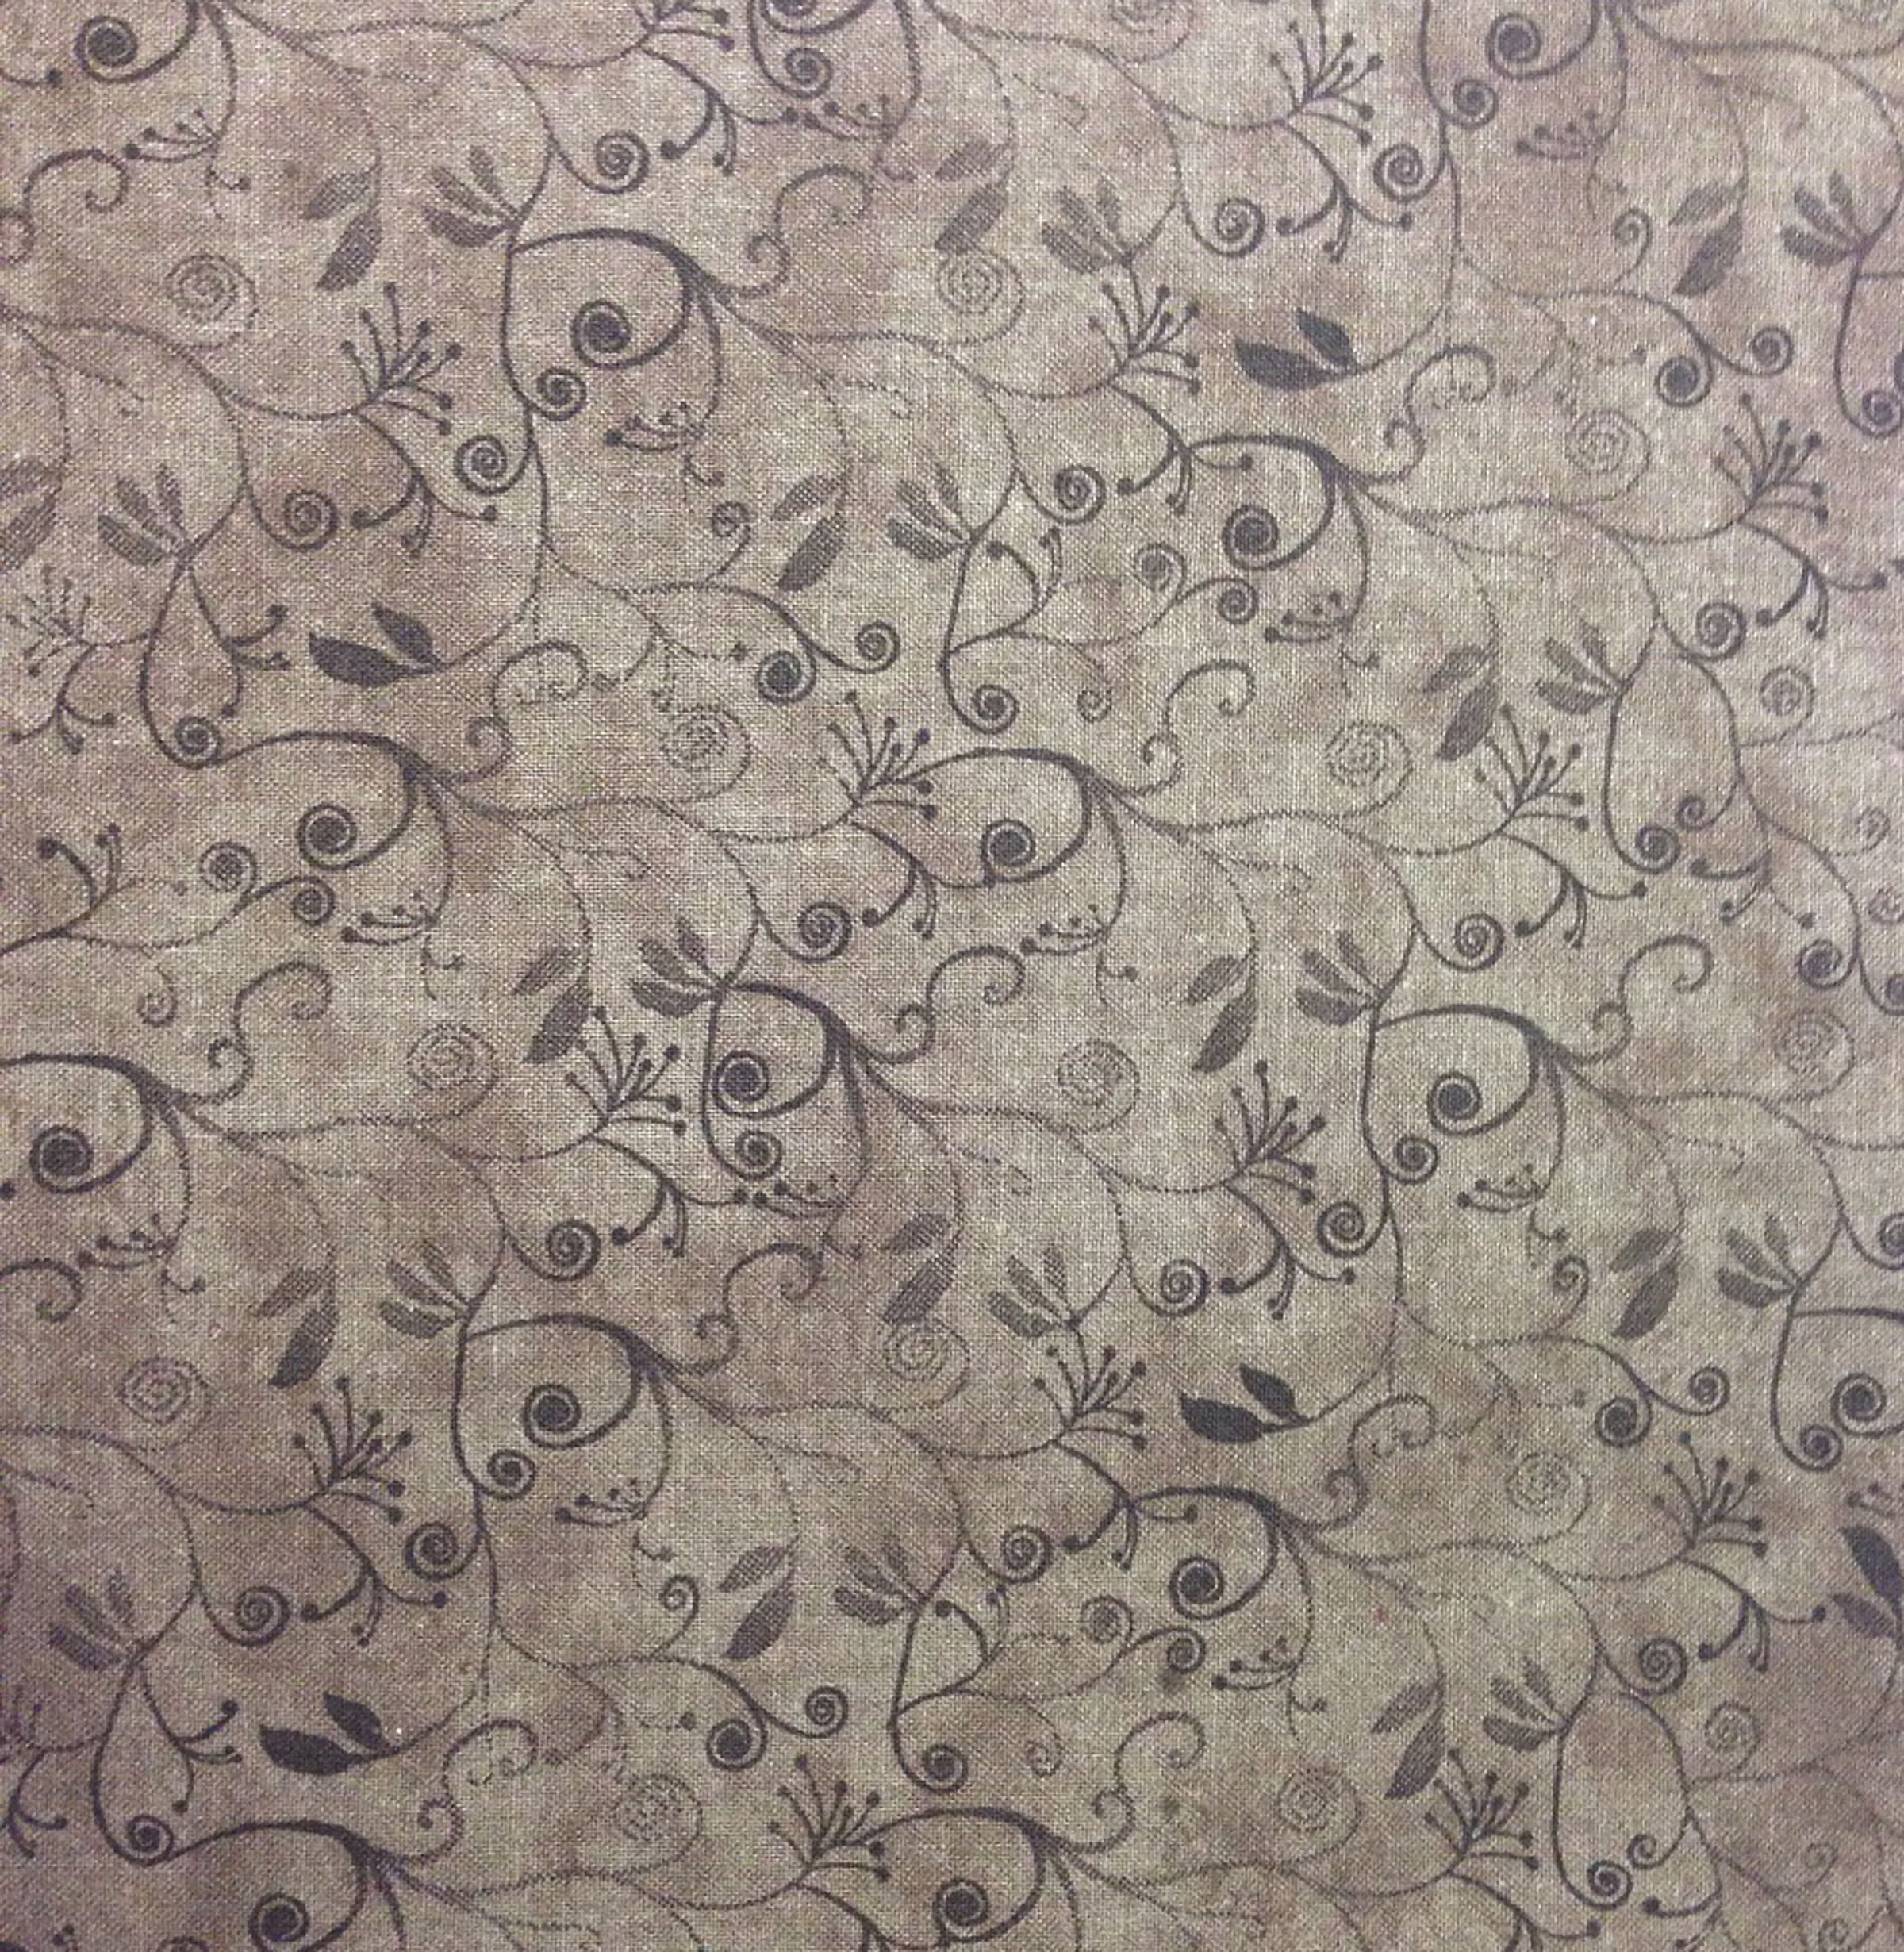 Keepsake Calico Cotton Fabric 43\u0027\u0027-Flourish on Brown Blender